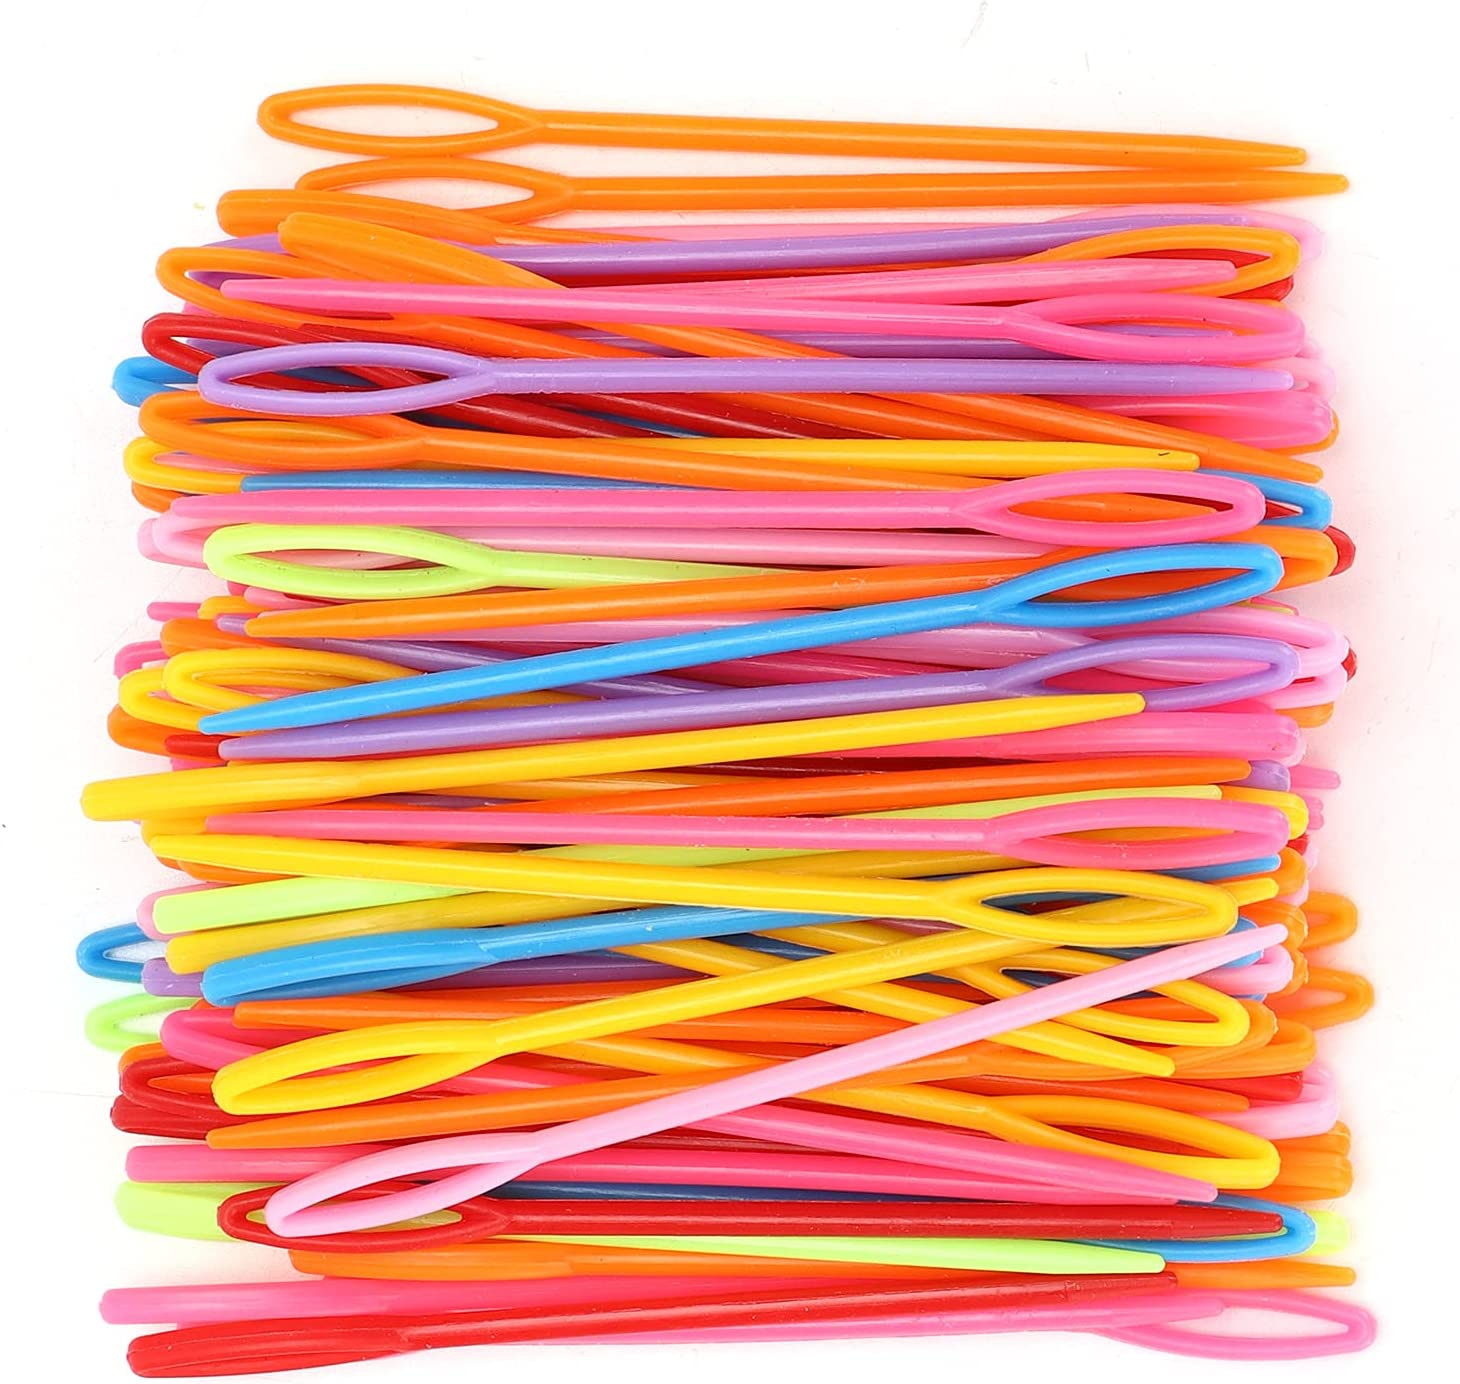 Velaurs Free shipping anywhere in the nation Plastic Surprise price Needles 1000Pcs Weavin Colorful Durable